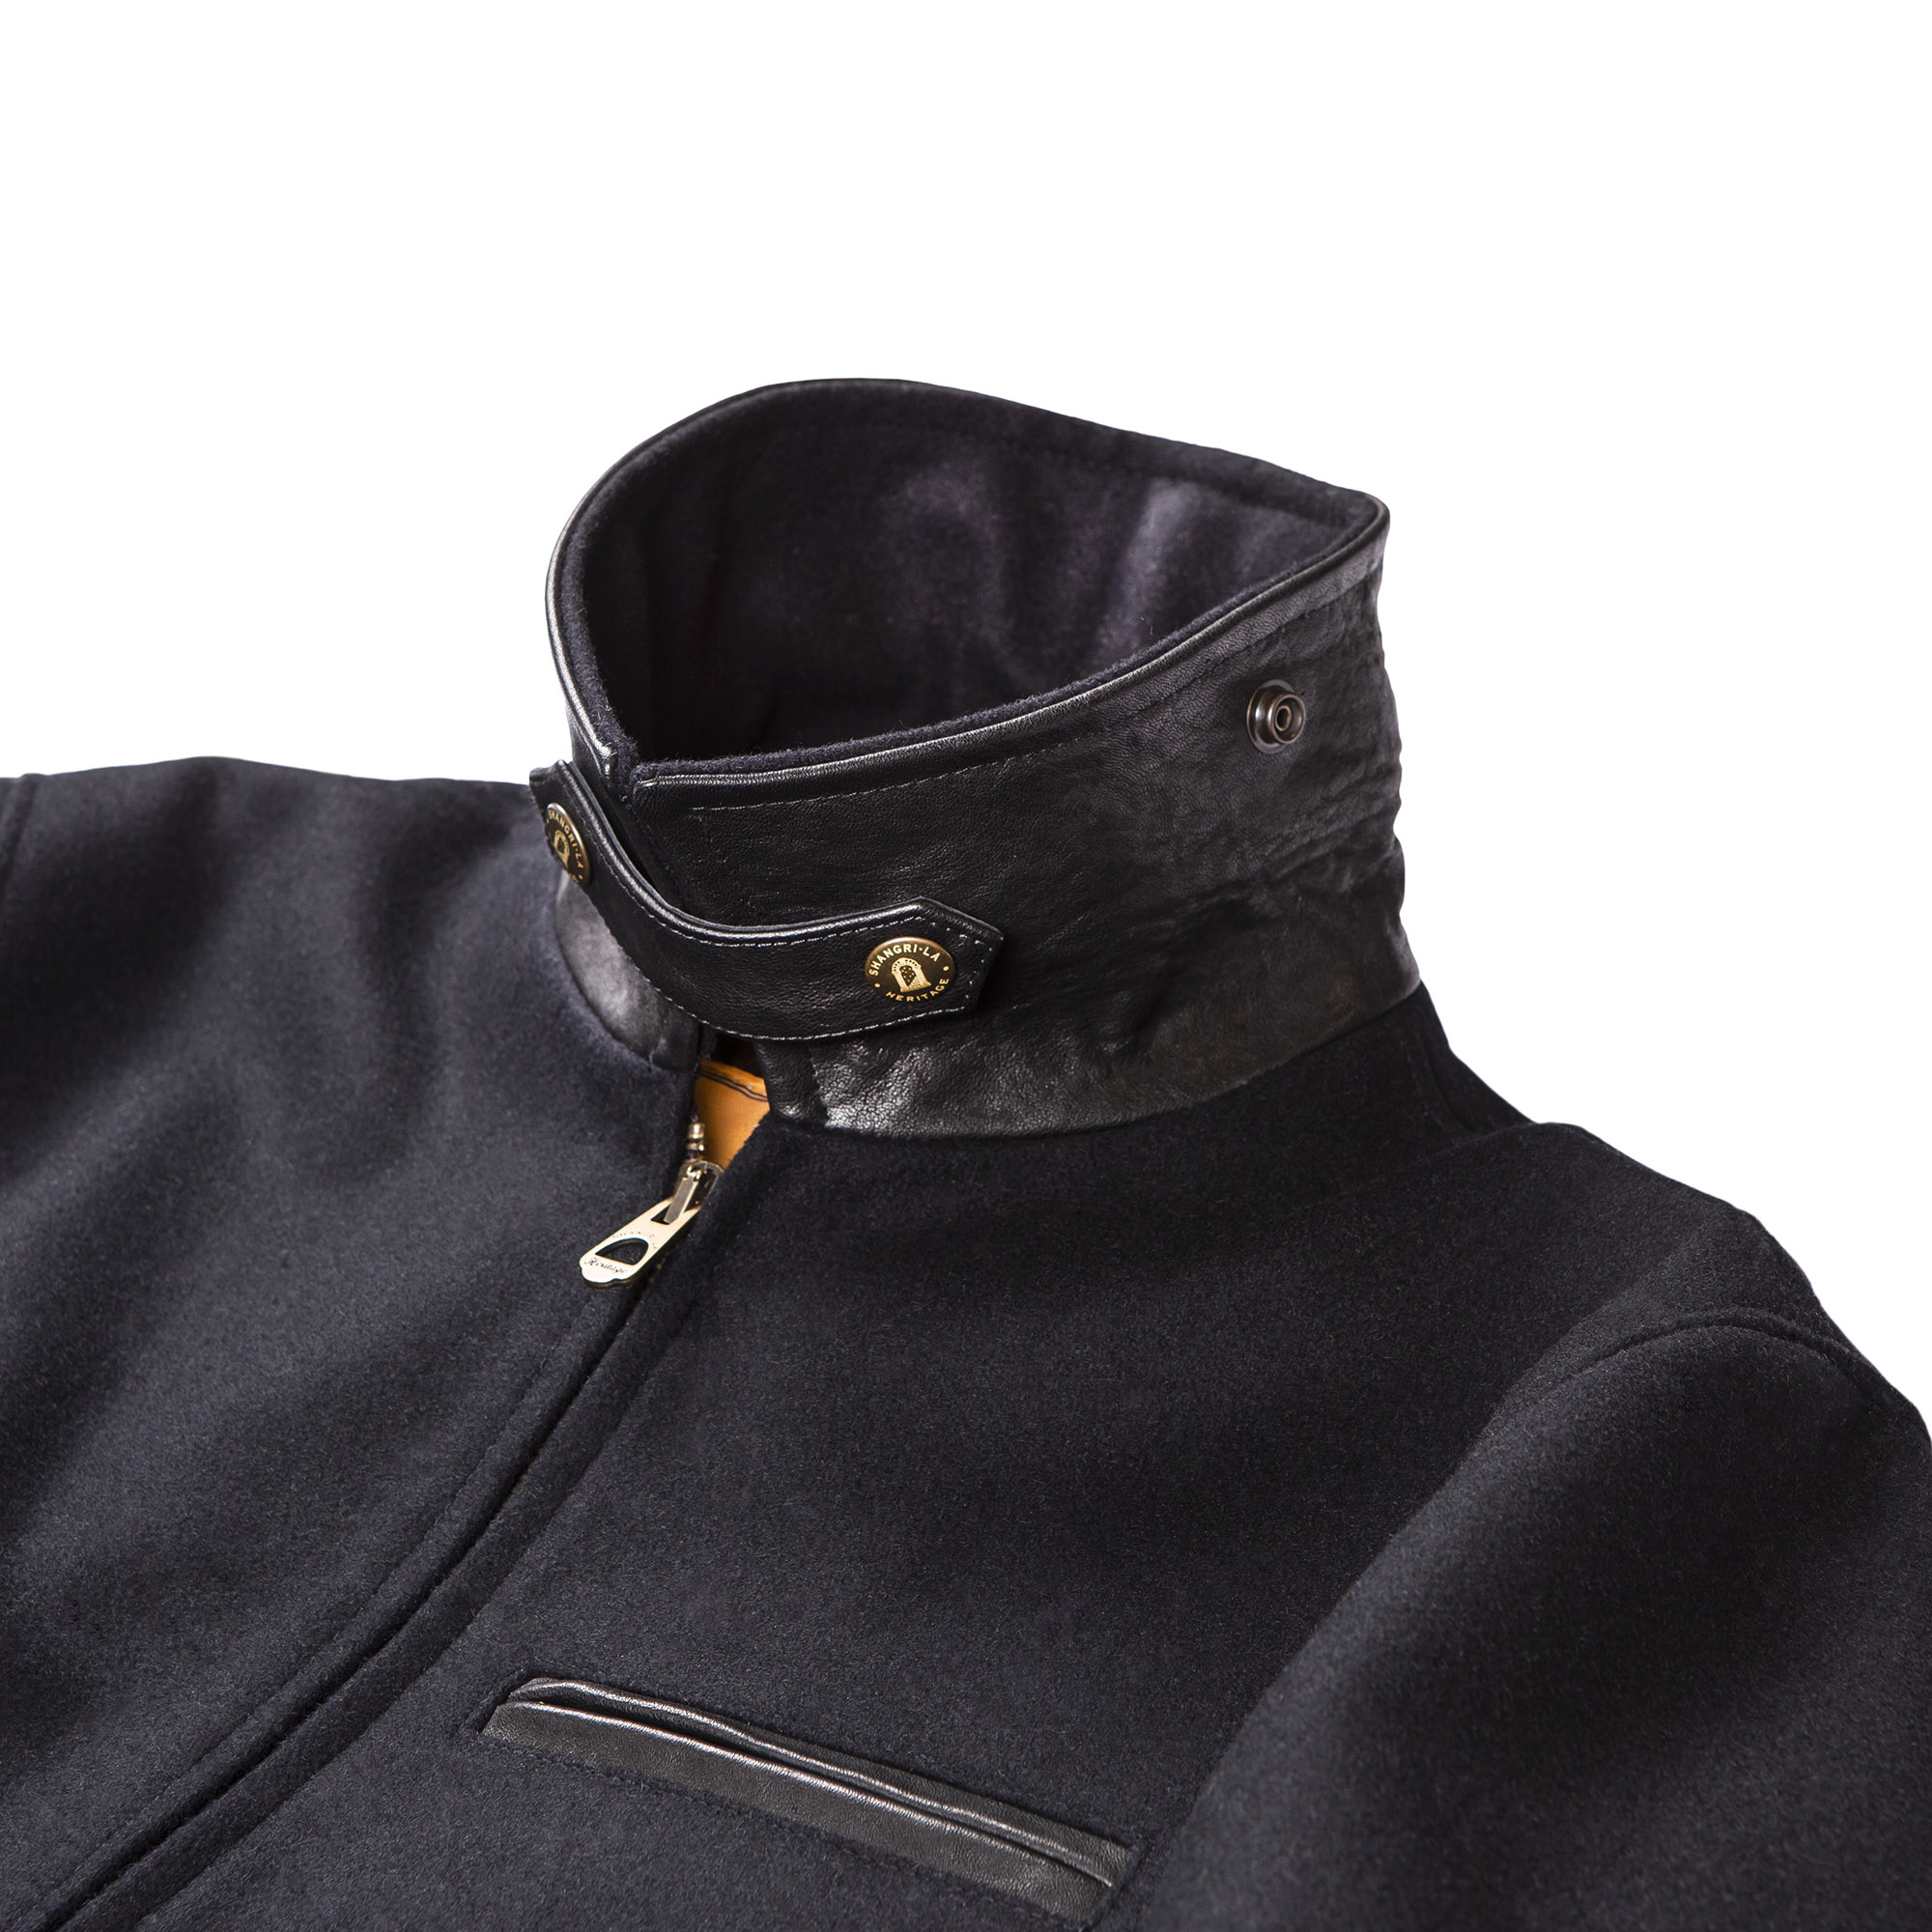 shangri-la-heritage-varenne-navy-blue-wool-jacket-still-life-collar-tab-closed